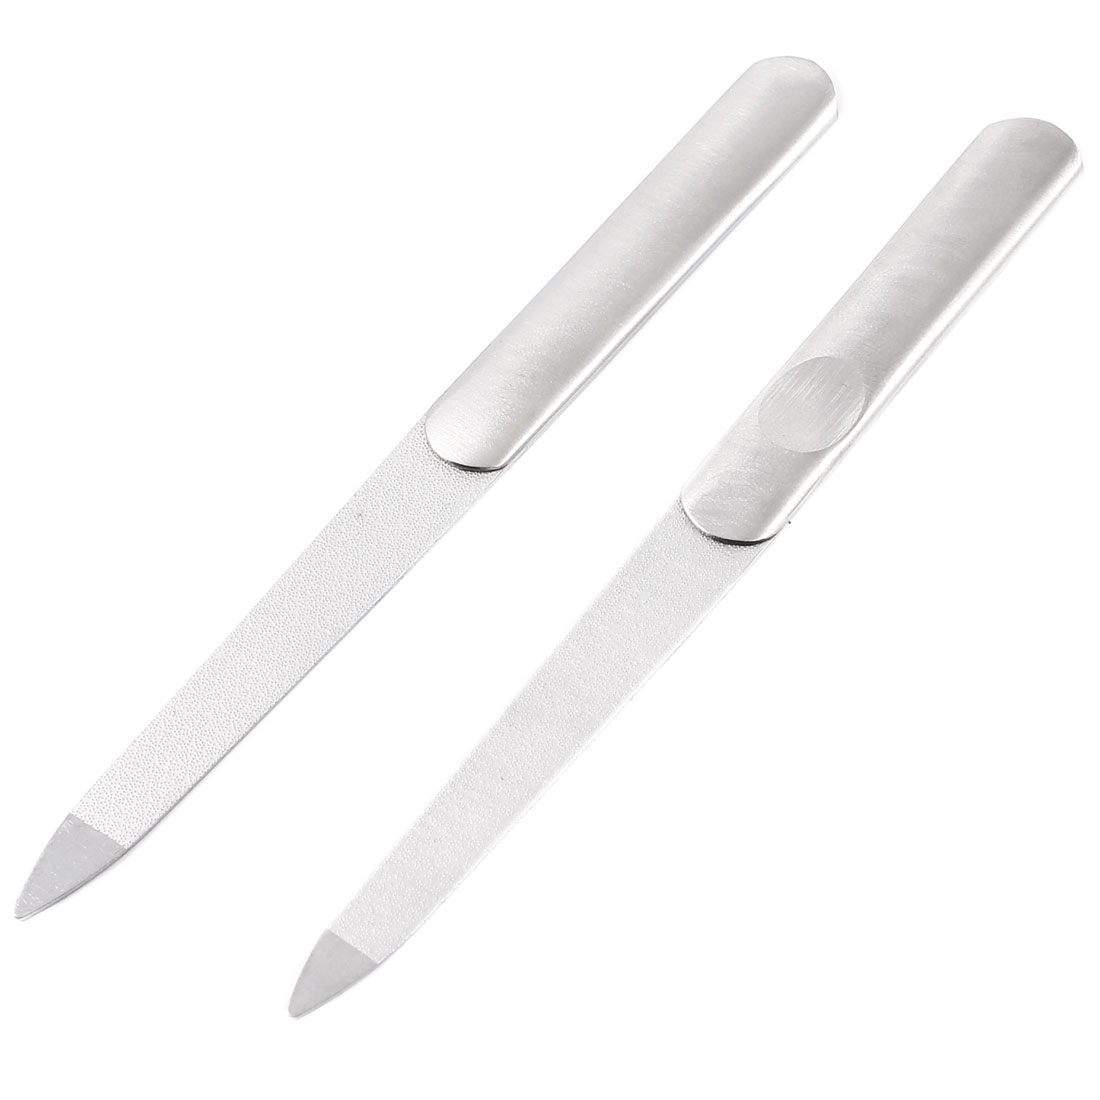 Beauty Tool Silver Tone Double Sides Metal Polishing Trimmer Nail File 2 Pcs